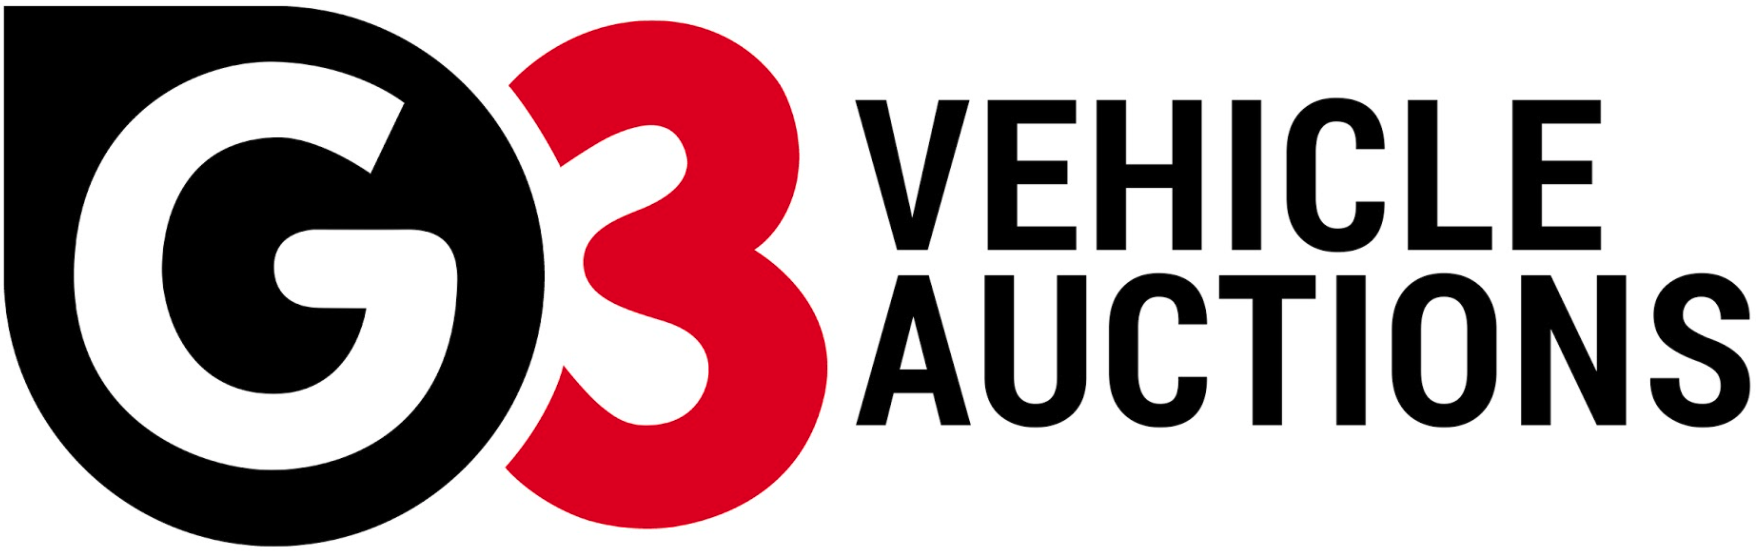 G3 Vehicle Auctions